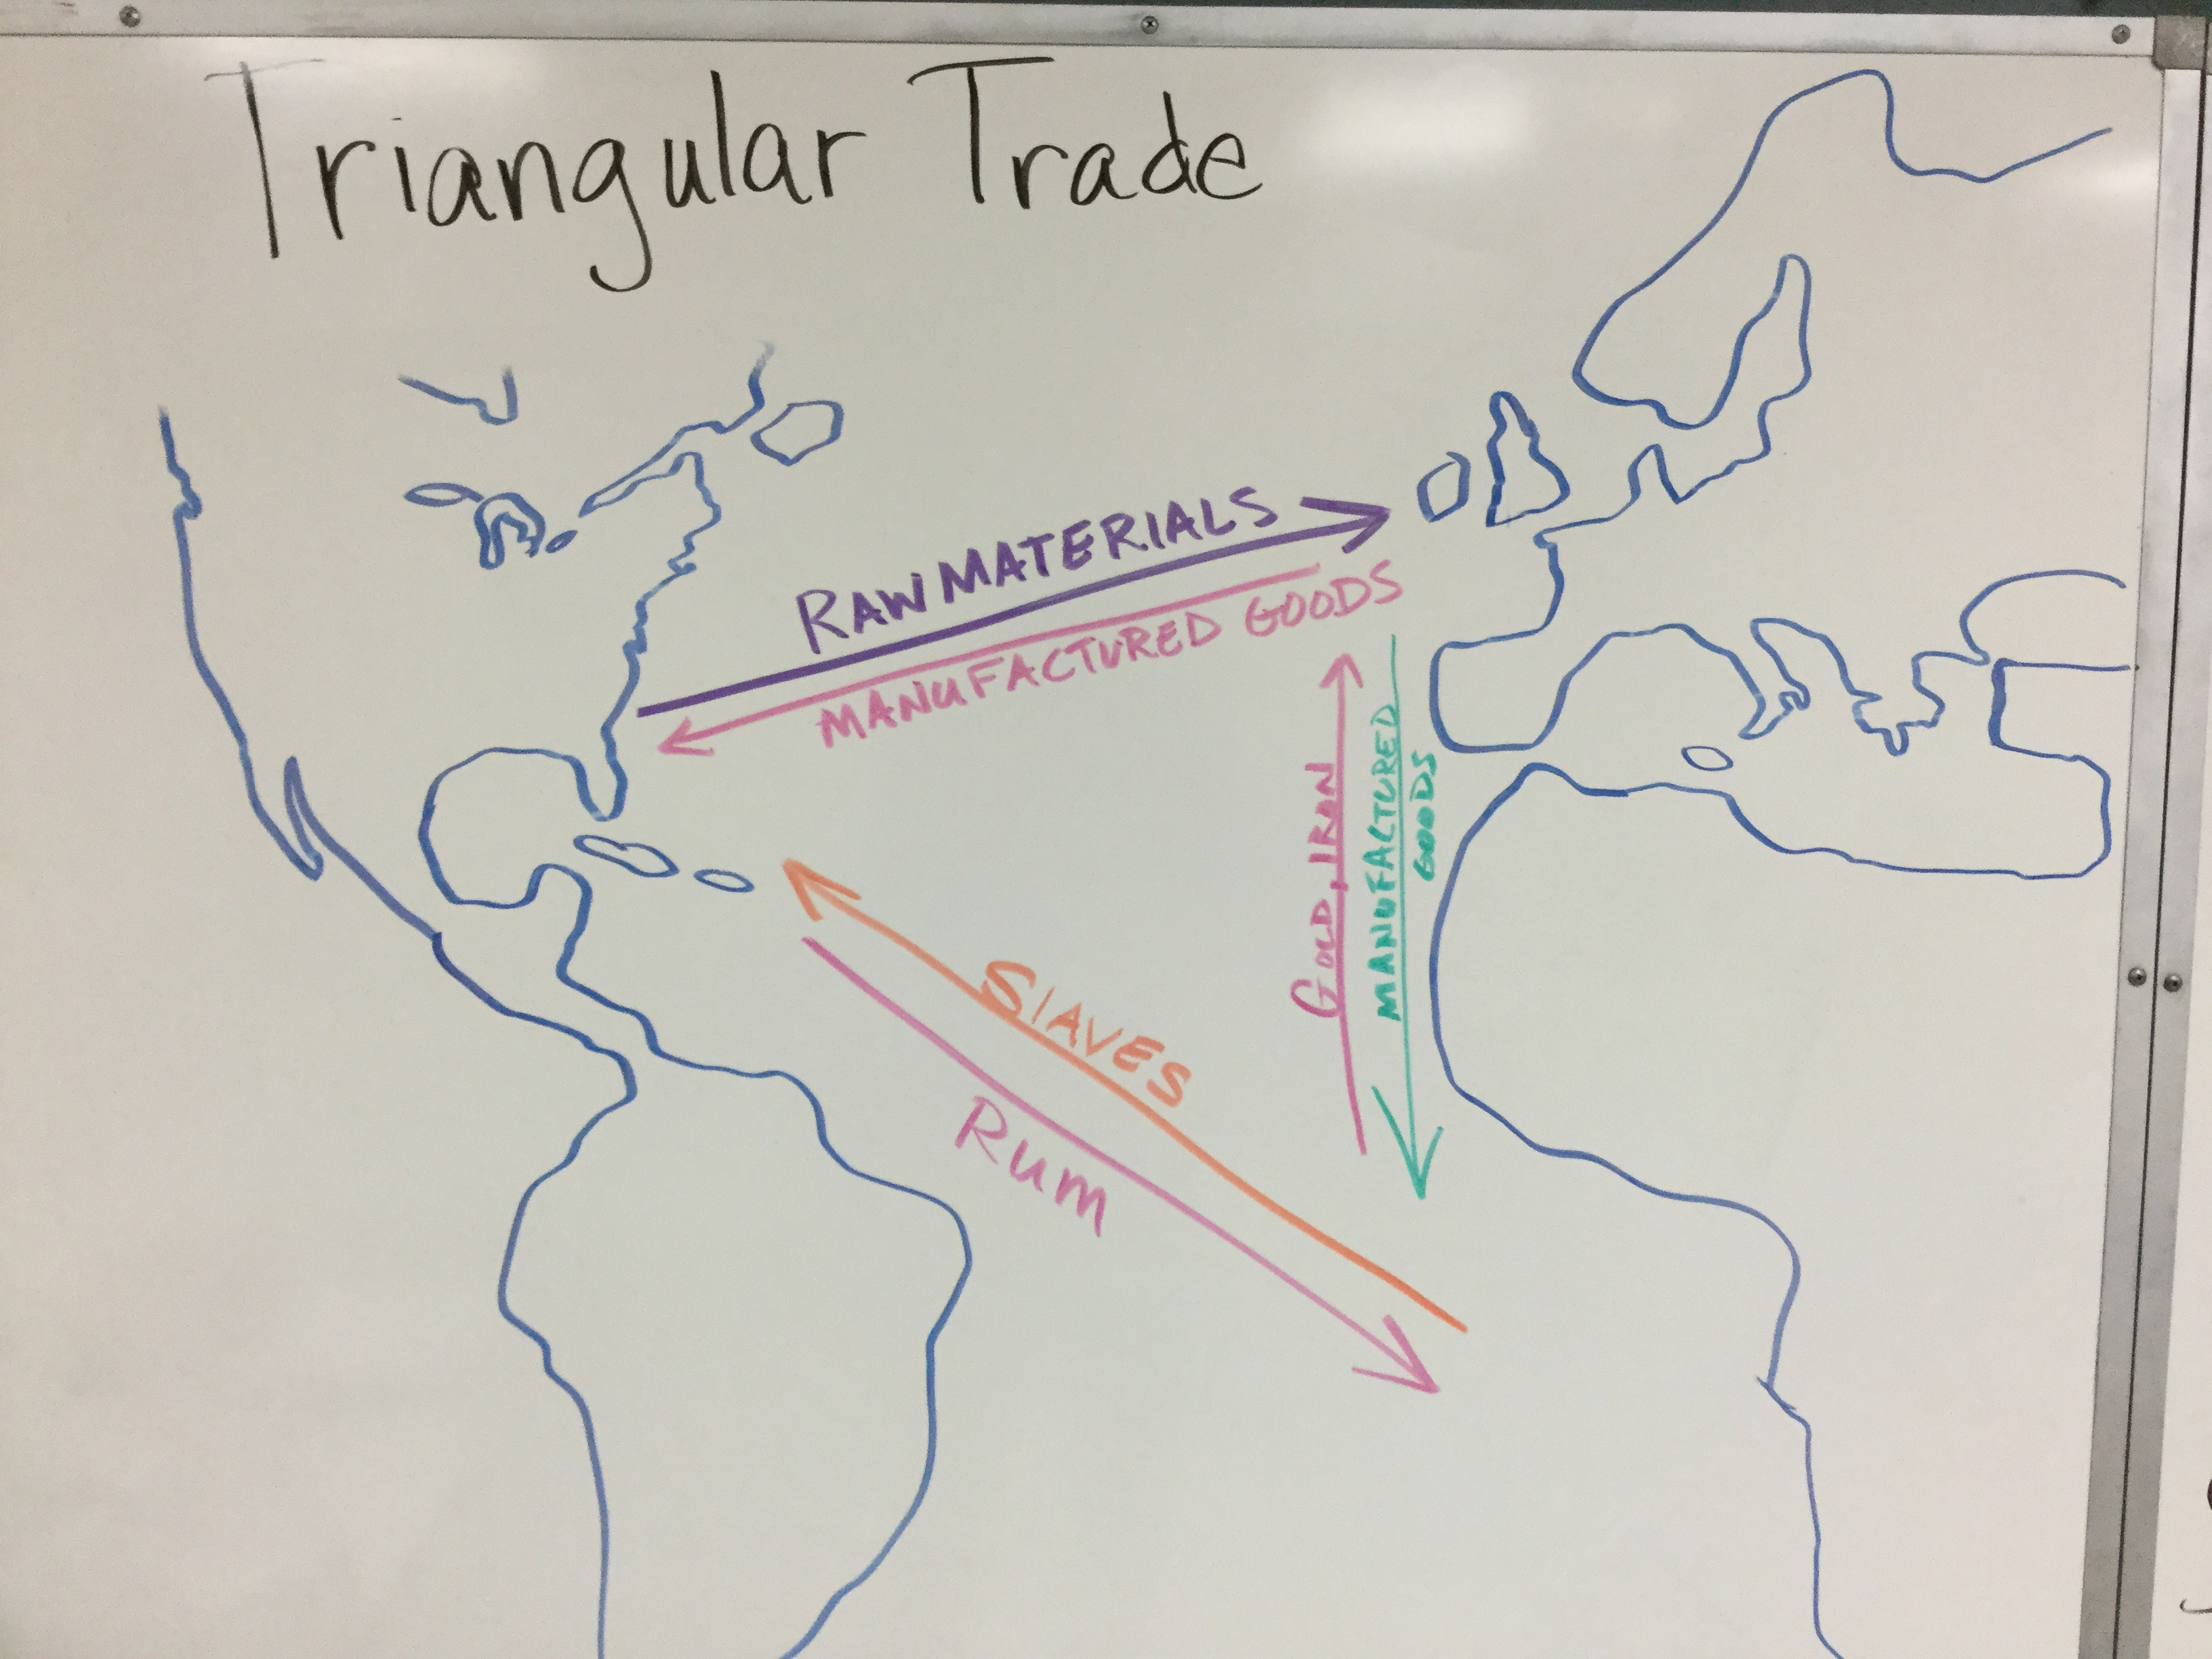 Triangular Trade History